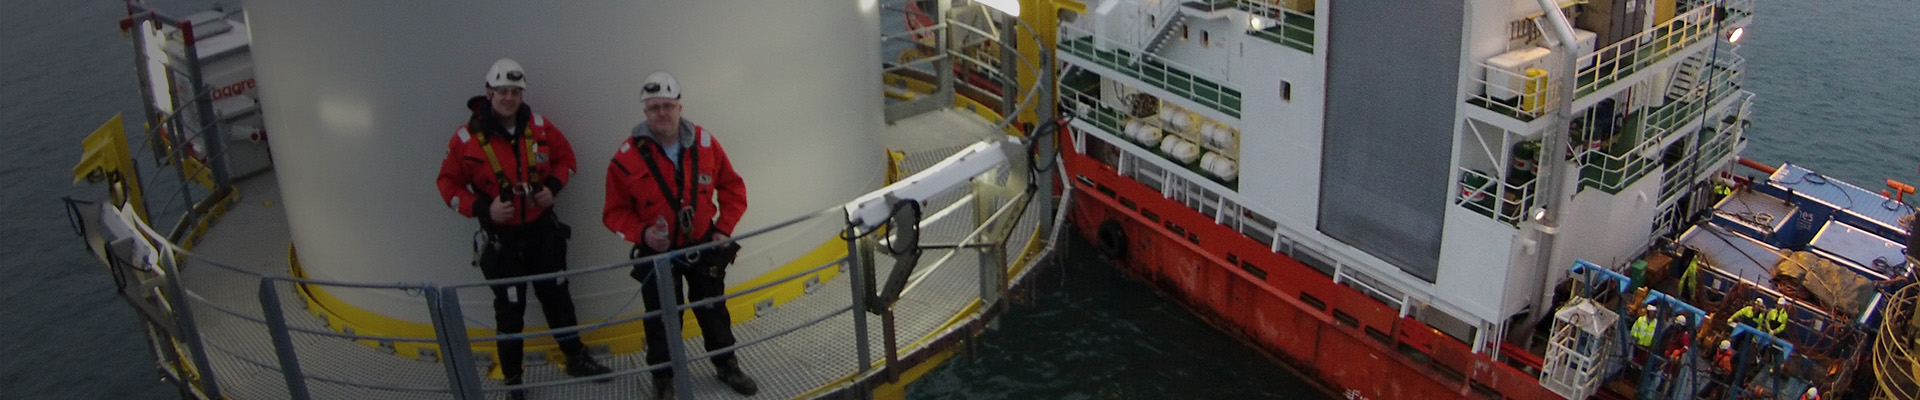 Men on offshore turbine